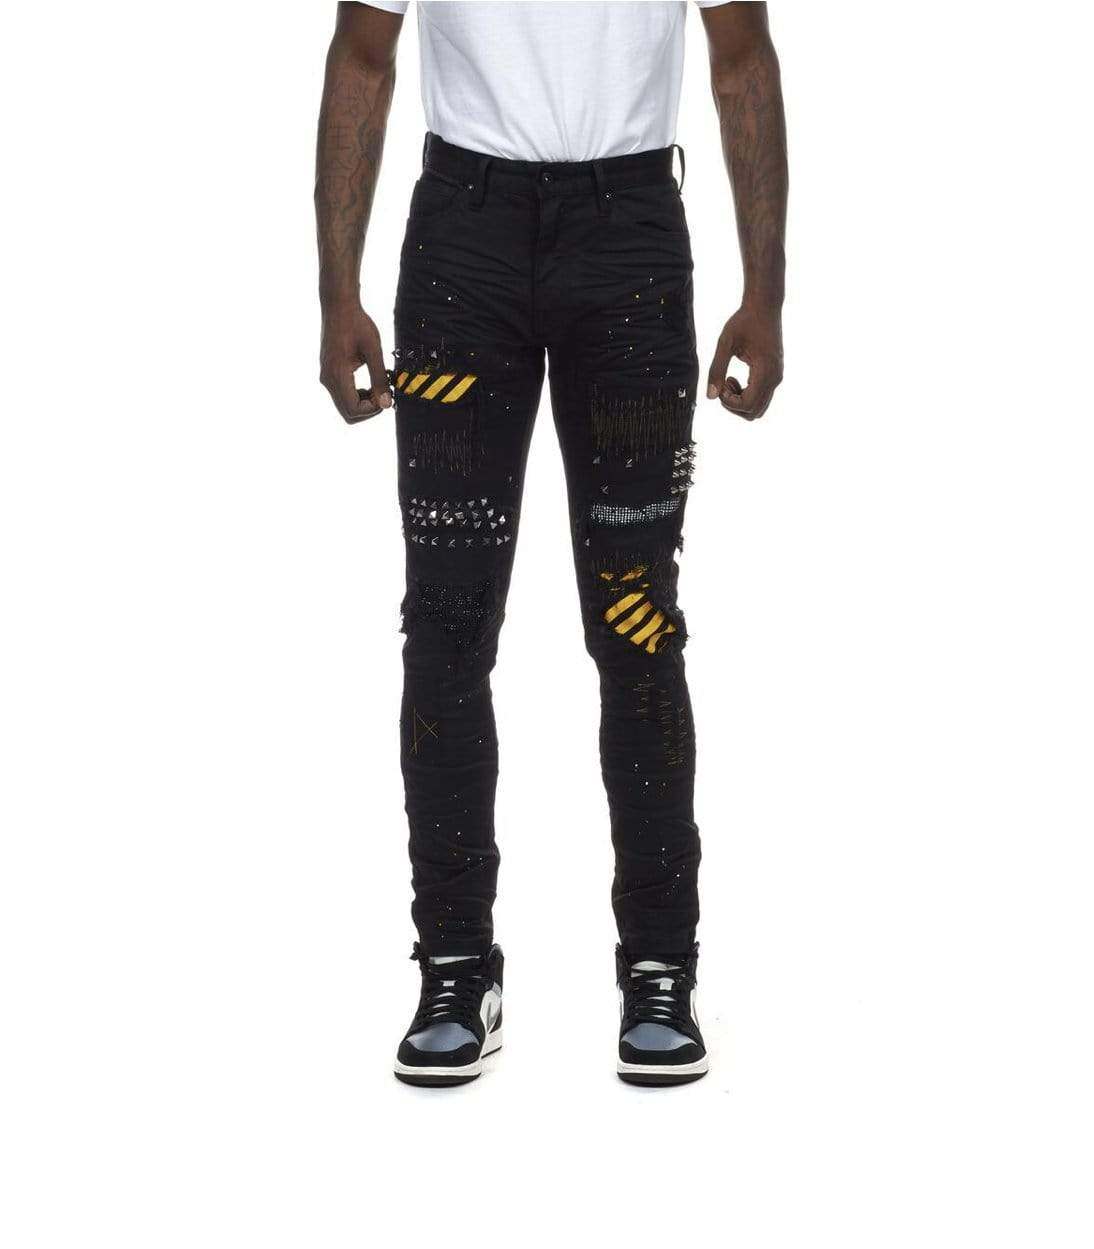 Rebel Groove Jeans Stripe Patched Denim Jeans